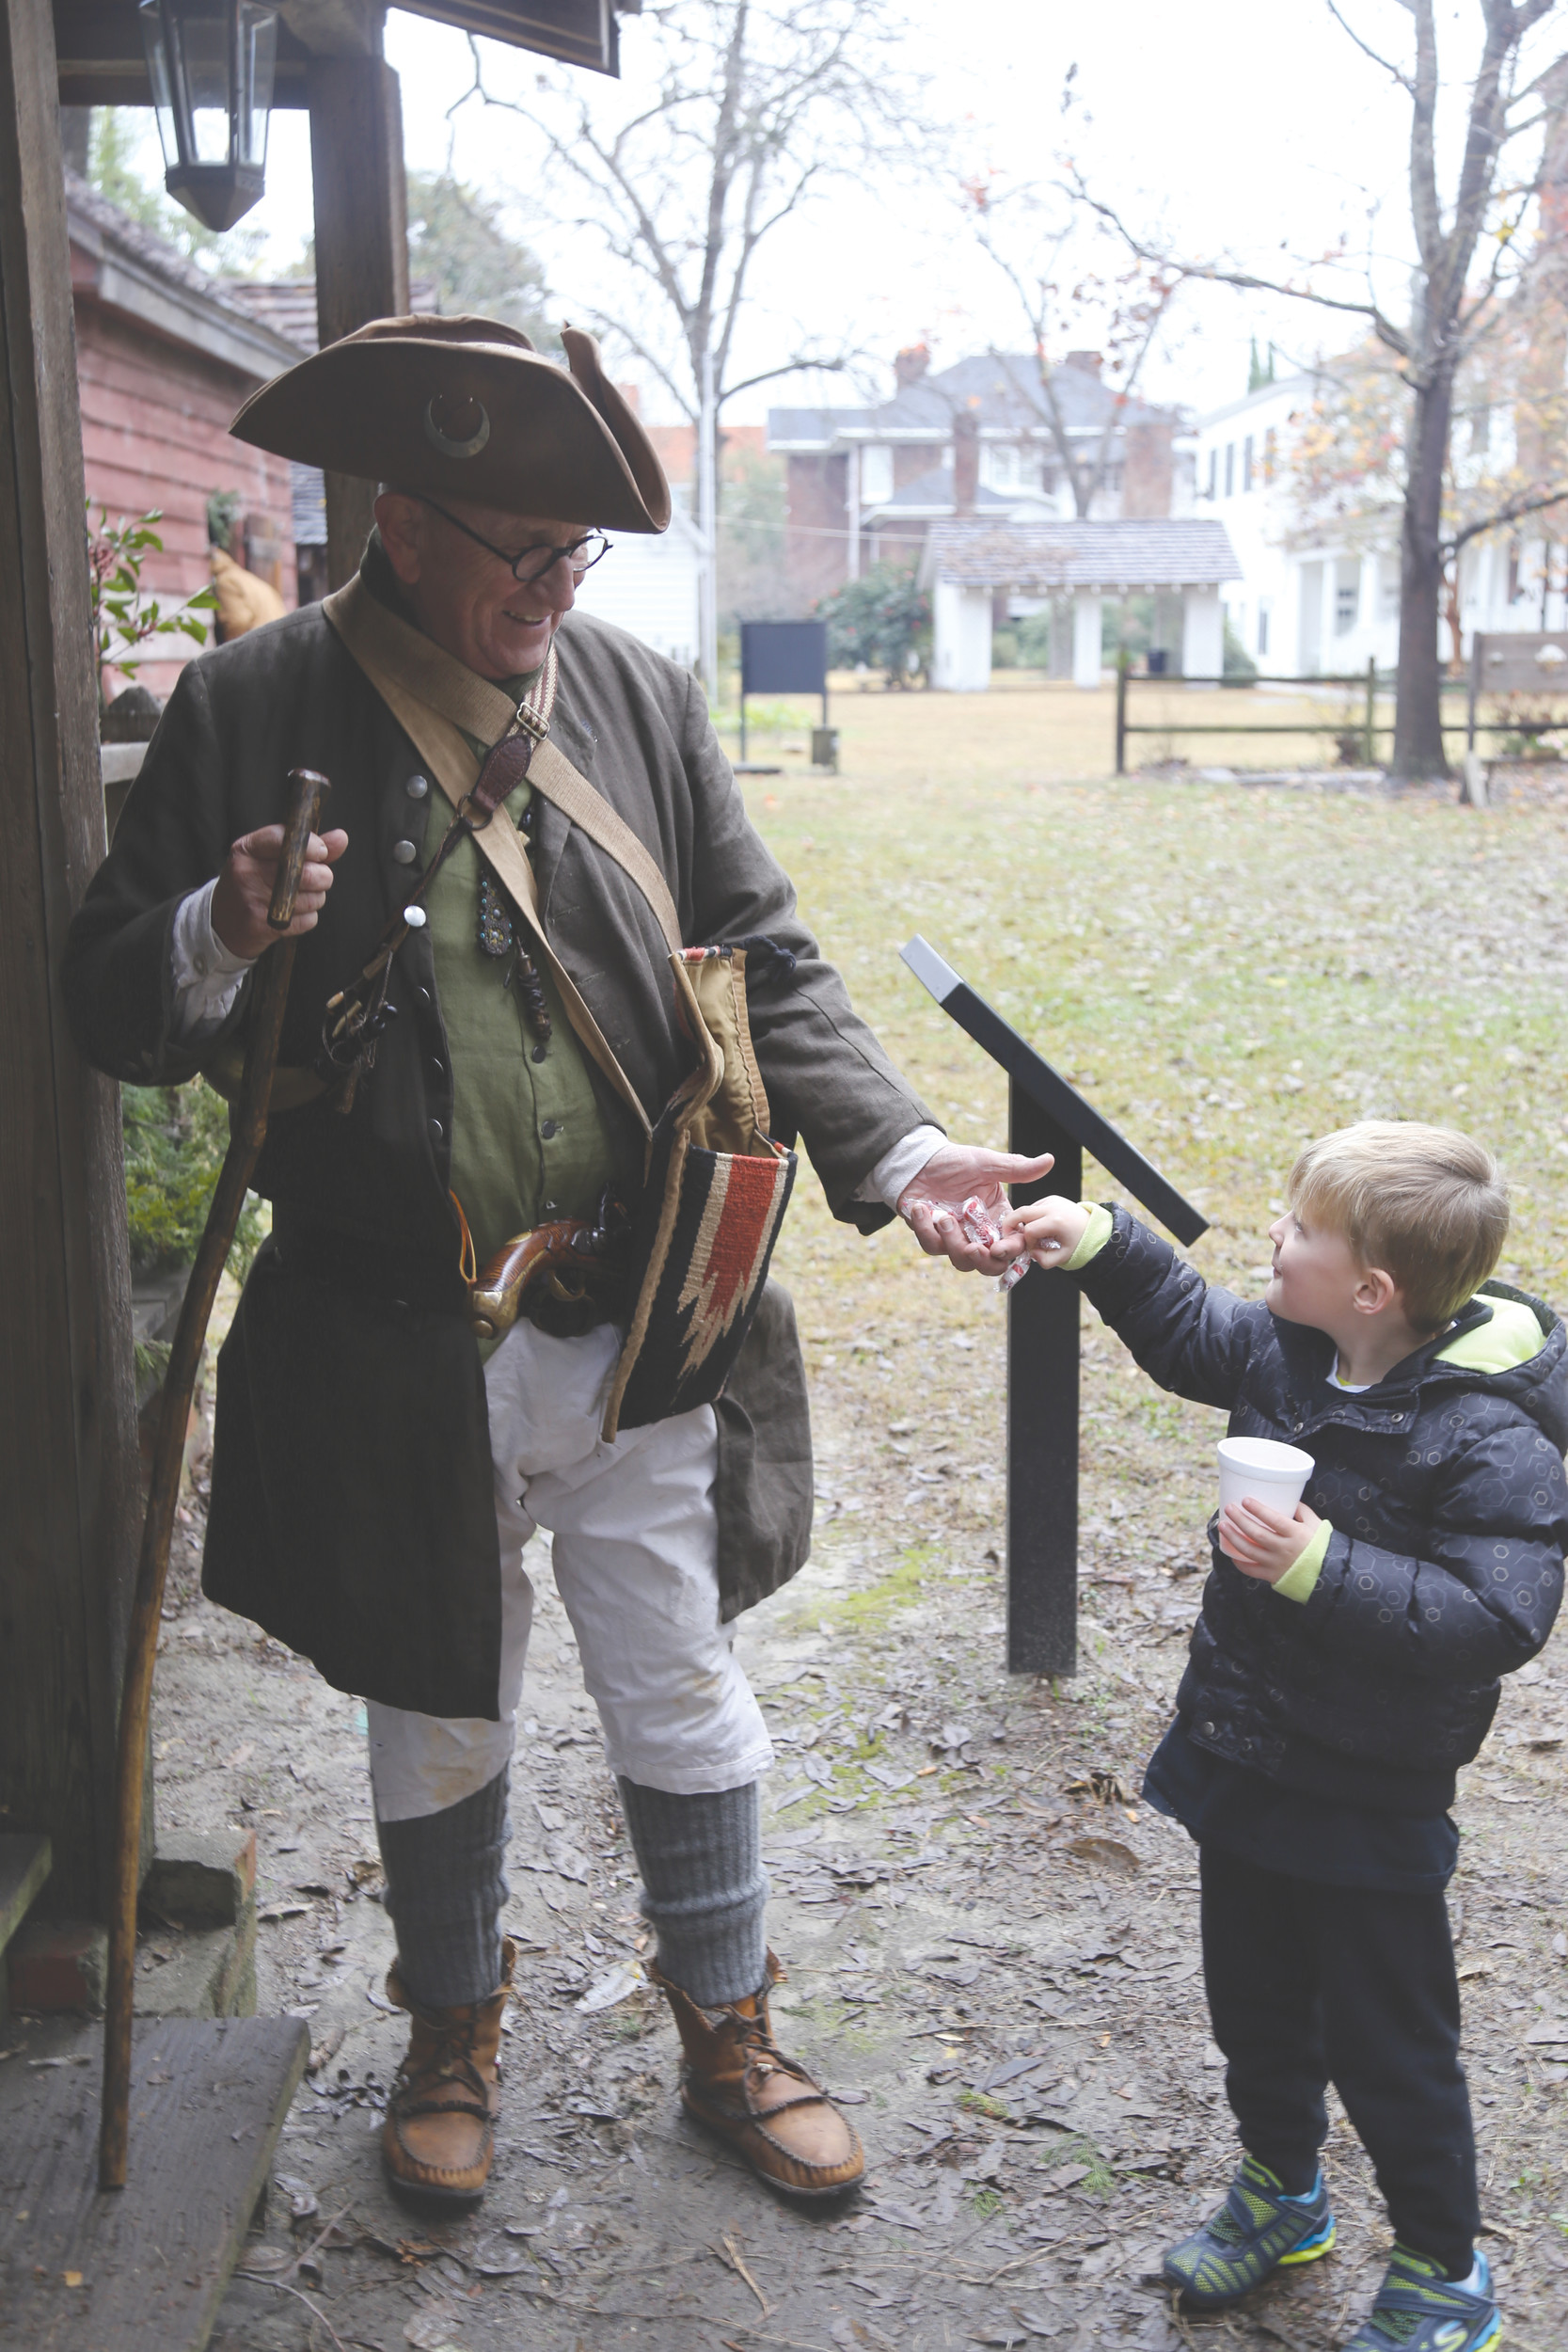 Ryan Heim, 5, takes a piece of candy from Frank Holloway, dressed as a Revolutionary War militiaman, at the event.